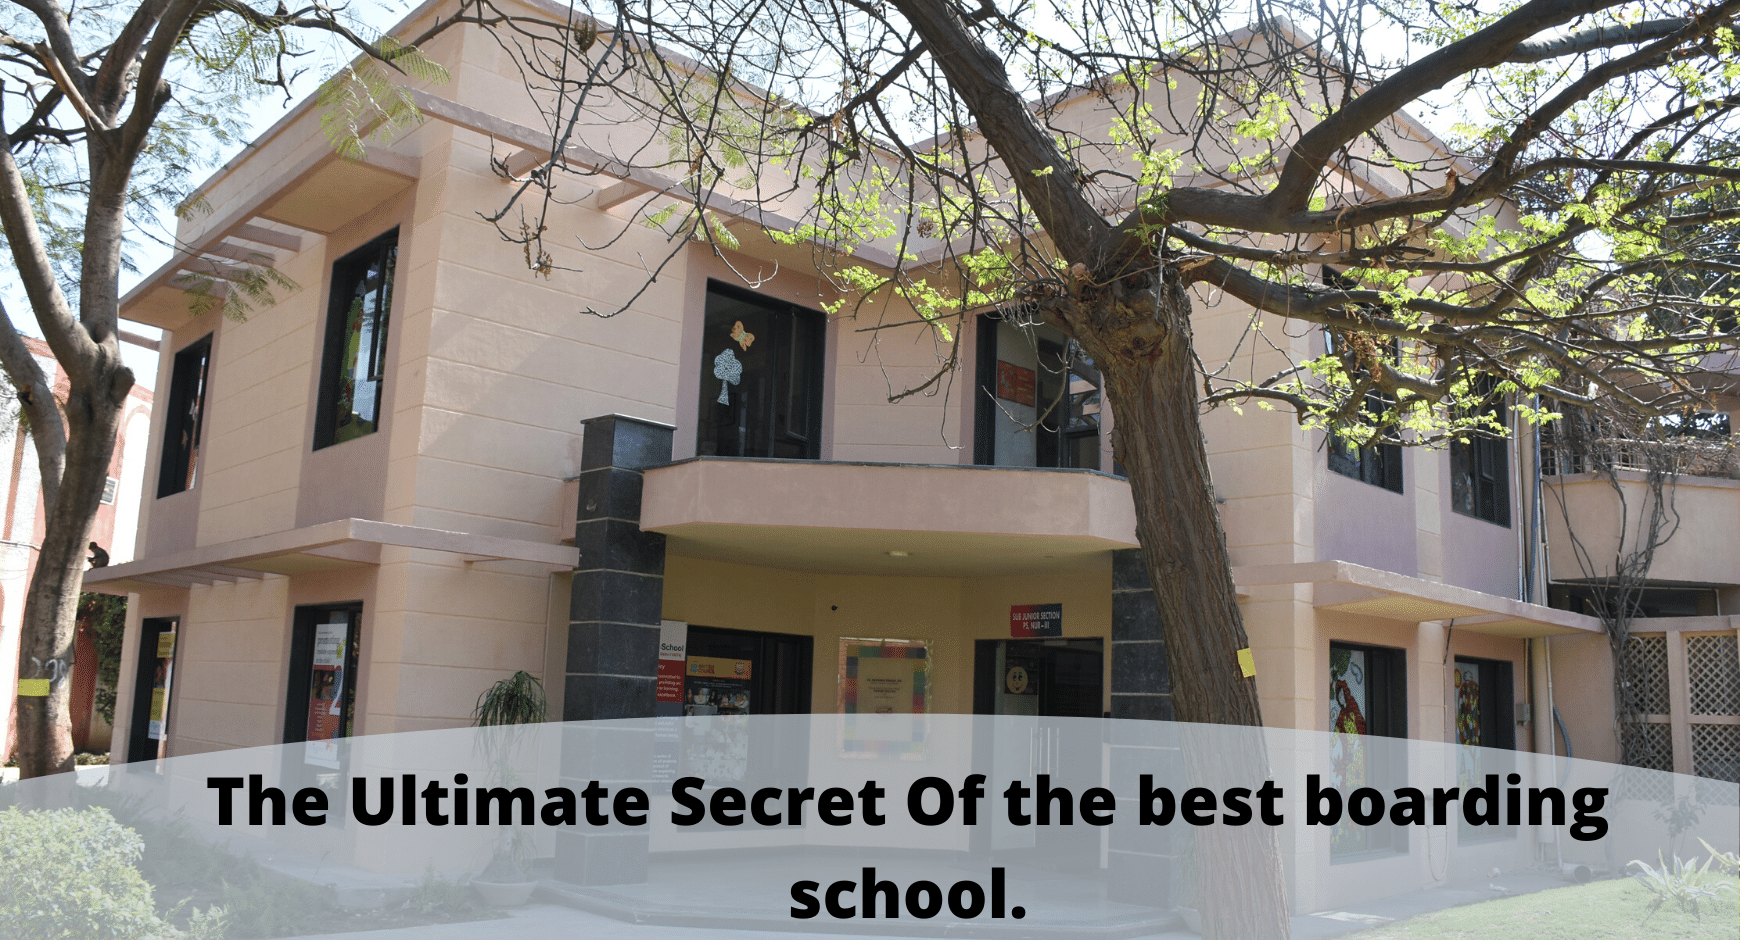 The Ultimate Secret Of the Best Boarding School